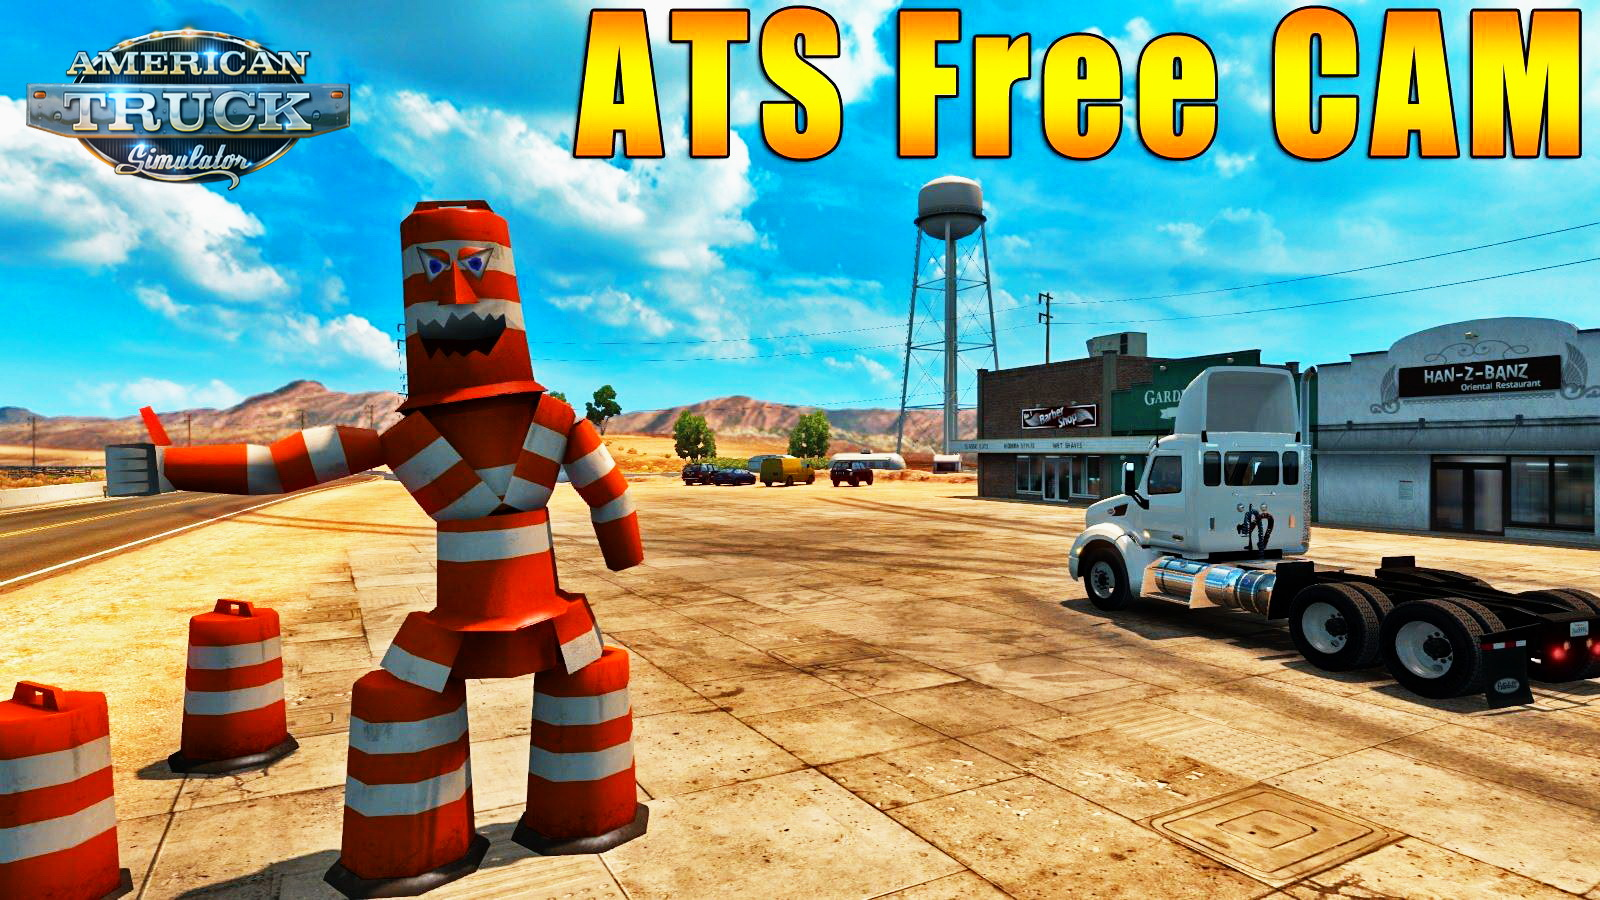 Free Camera Mod v1.0 for ATS